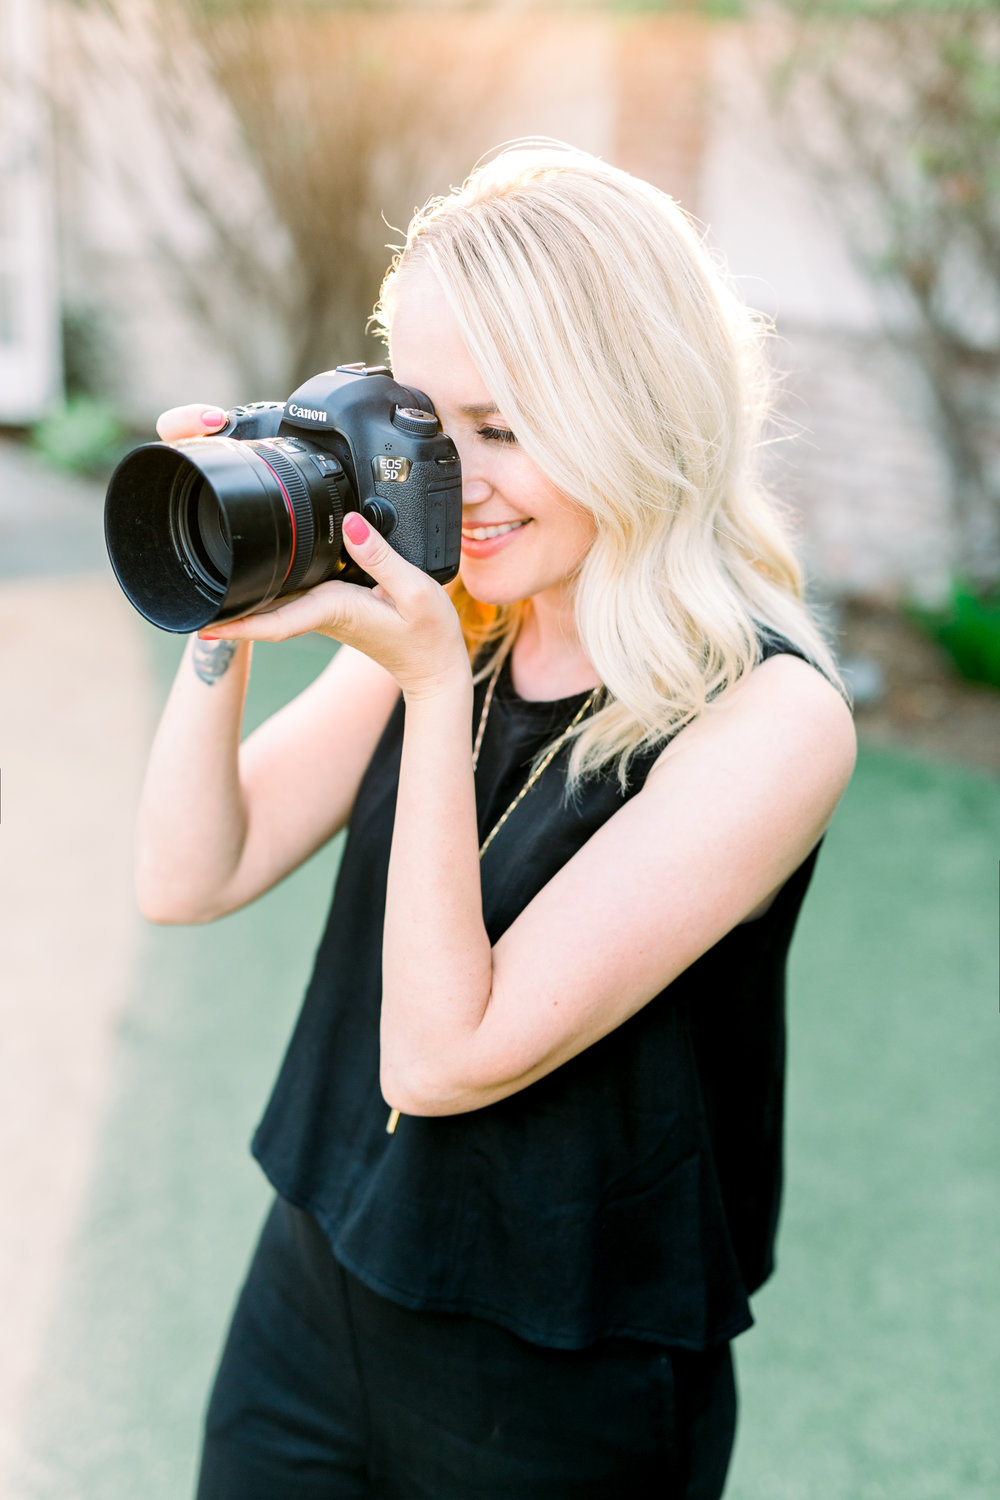 Erin Muller is a Long Beach wedding photographer who specializes in capturing the story of your wedding day.